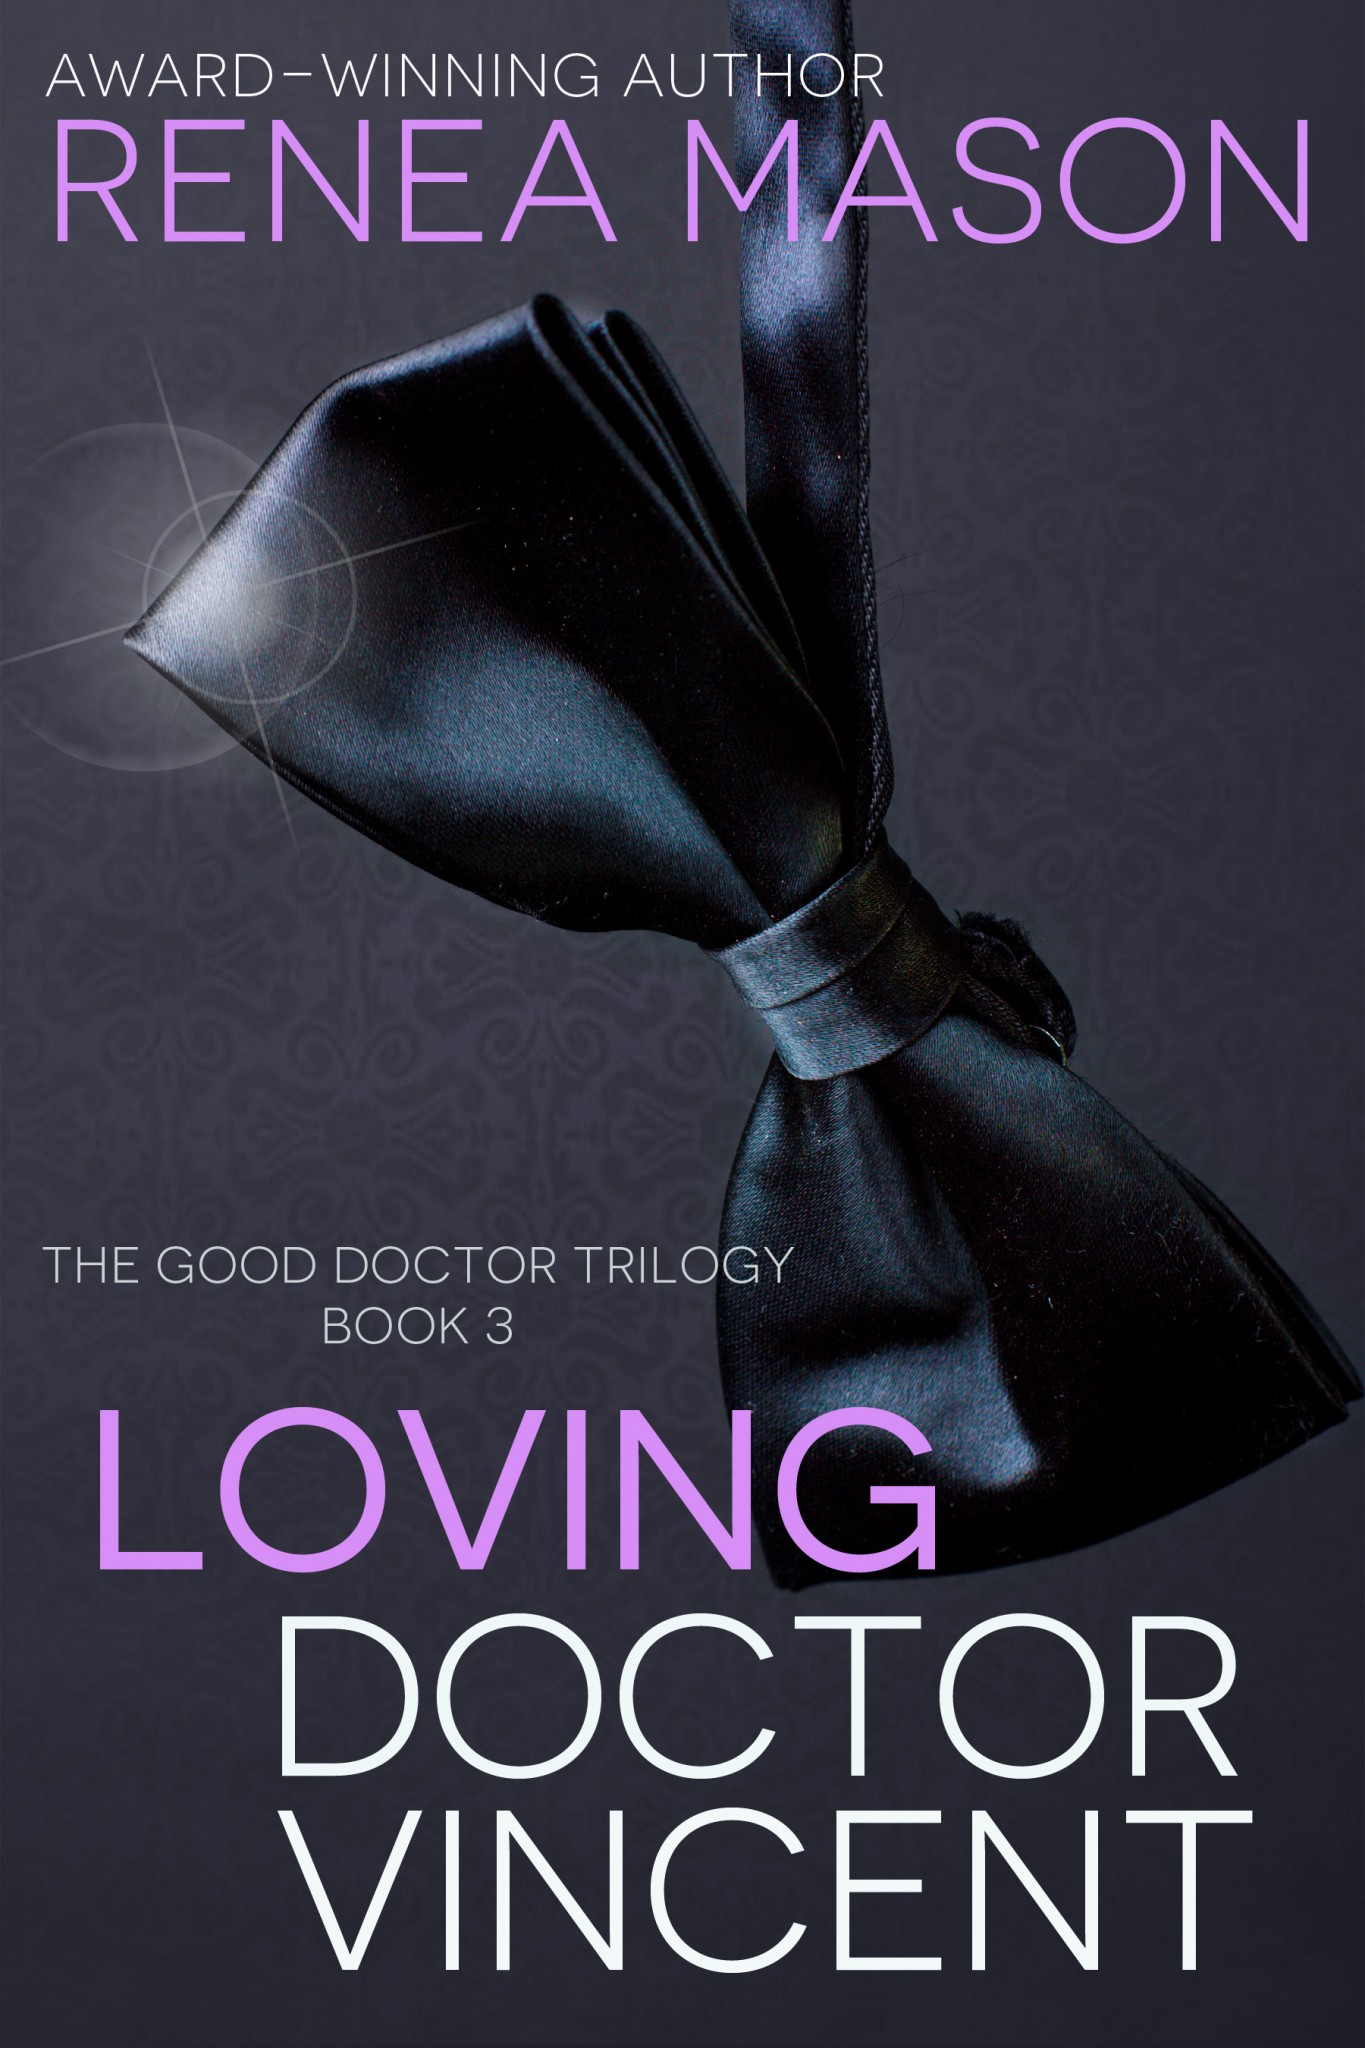 Loving Doctor Vincent now available for pre-order!